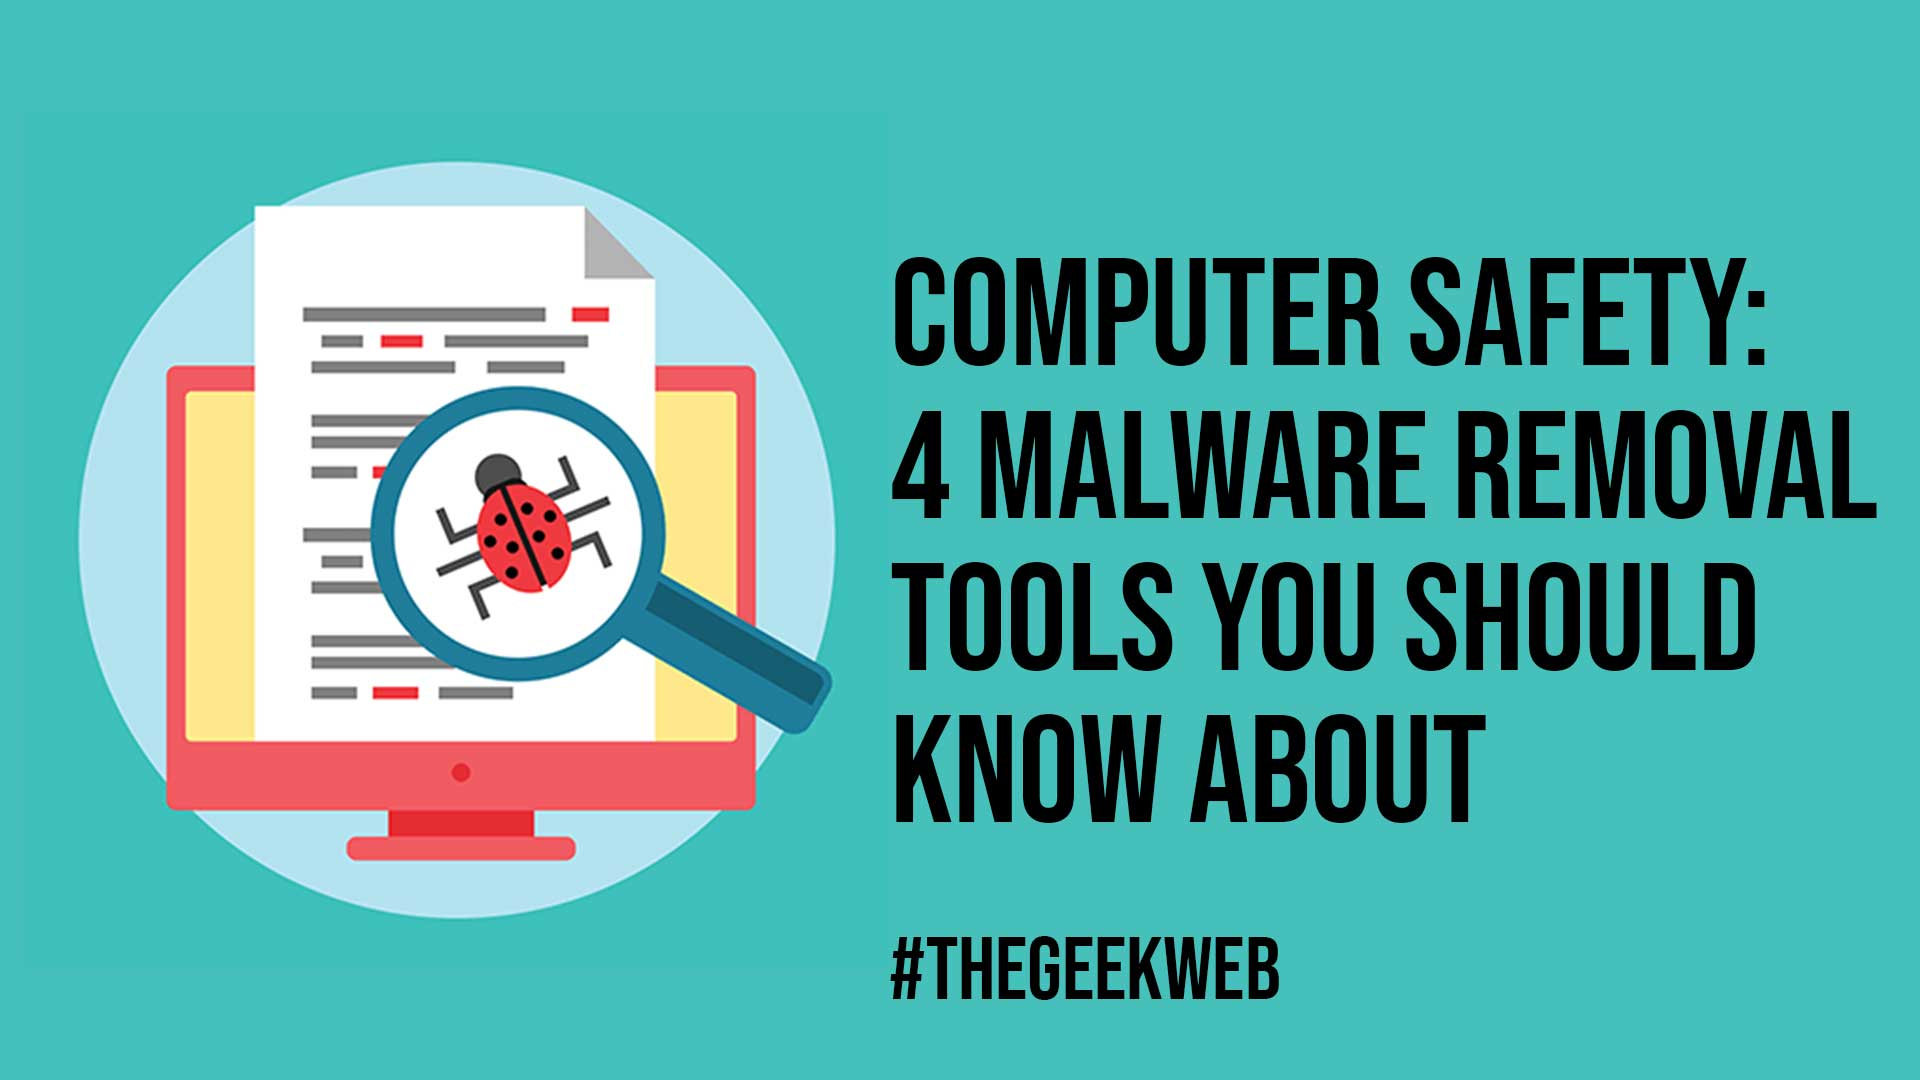 Computer Safety 4 Malware Removal Tools You Should Know About